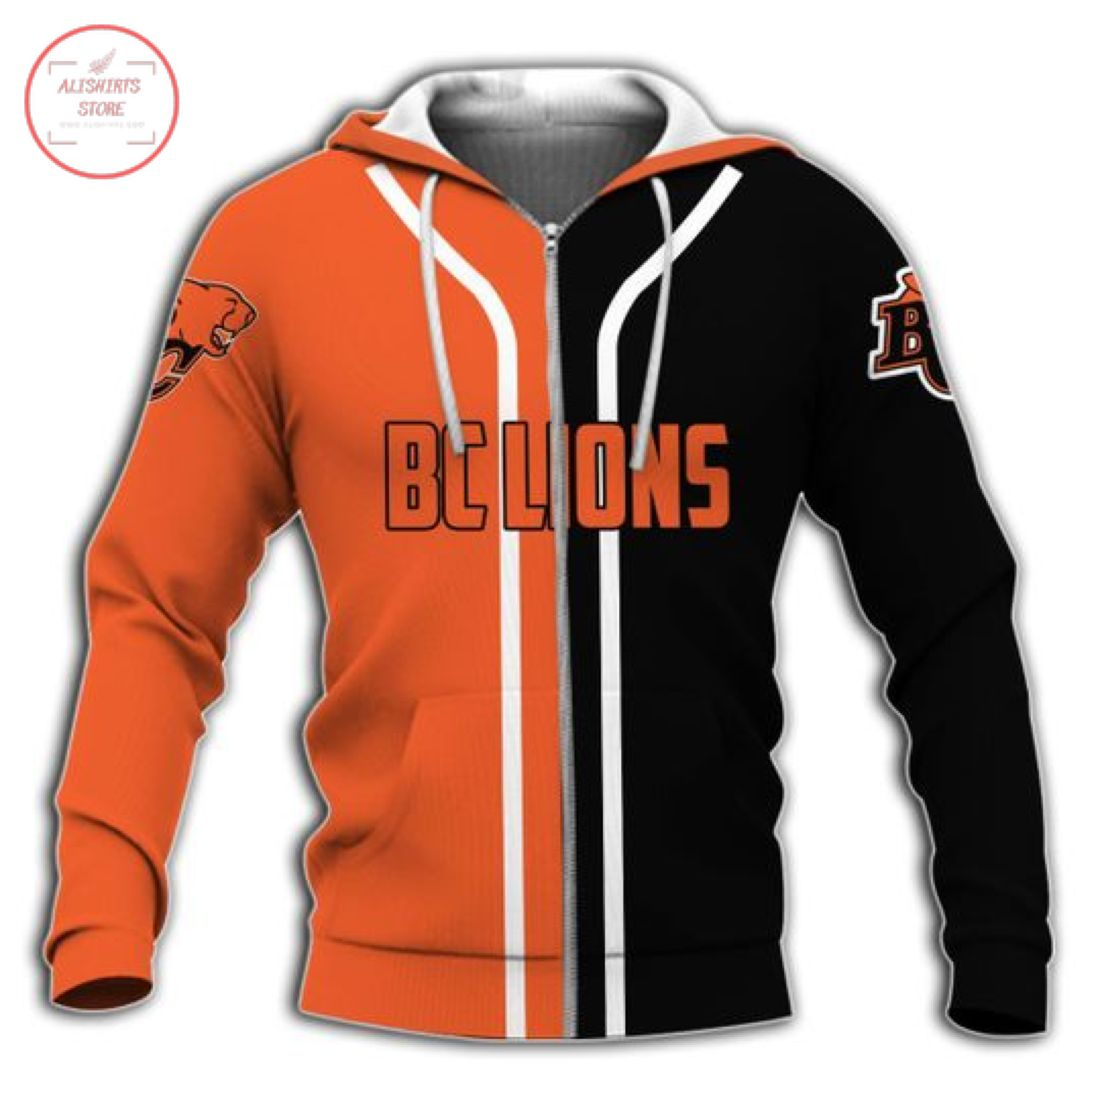 Cfl Bc Lions Personalized Shirts